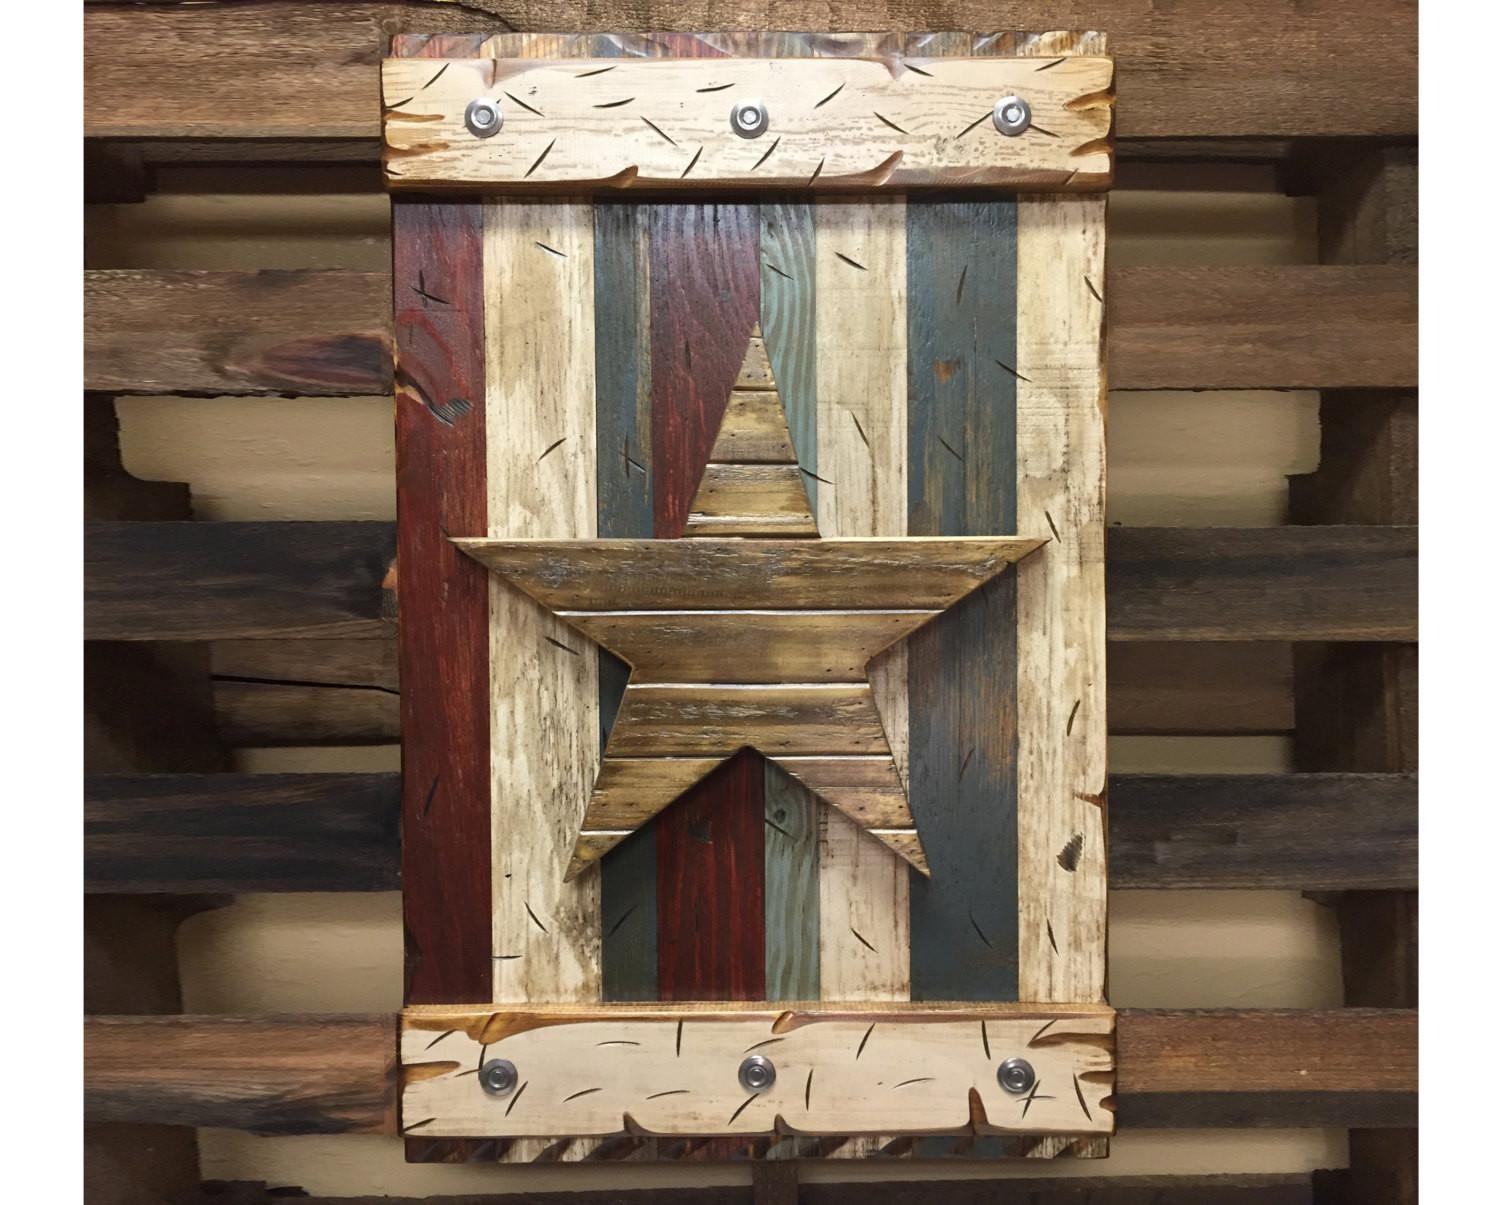 Star Rustic Sign Reclaimed Shutter Distressed Industrial